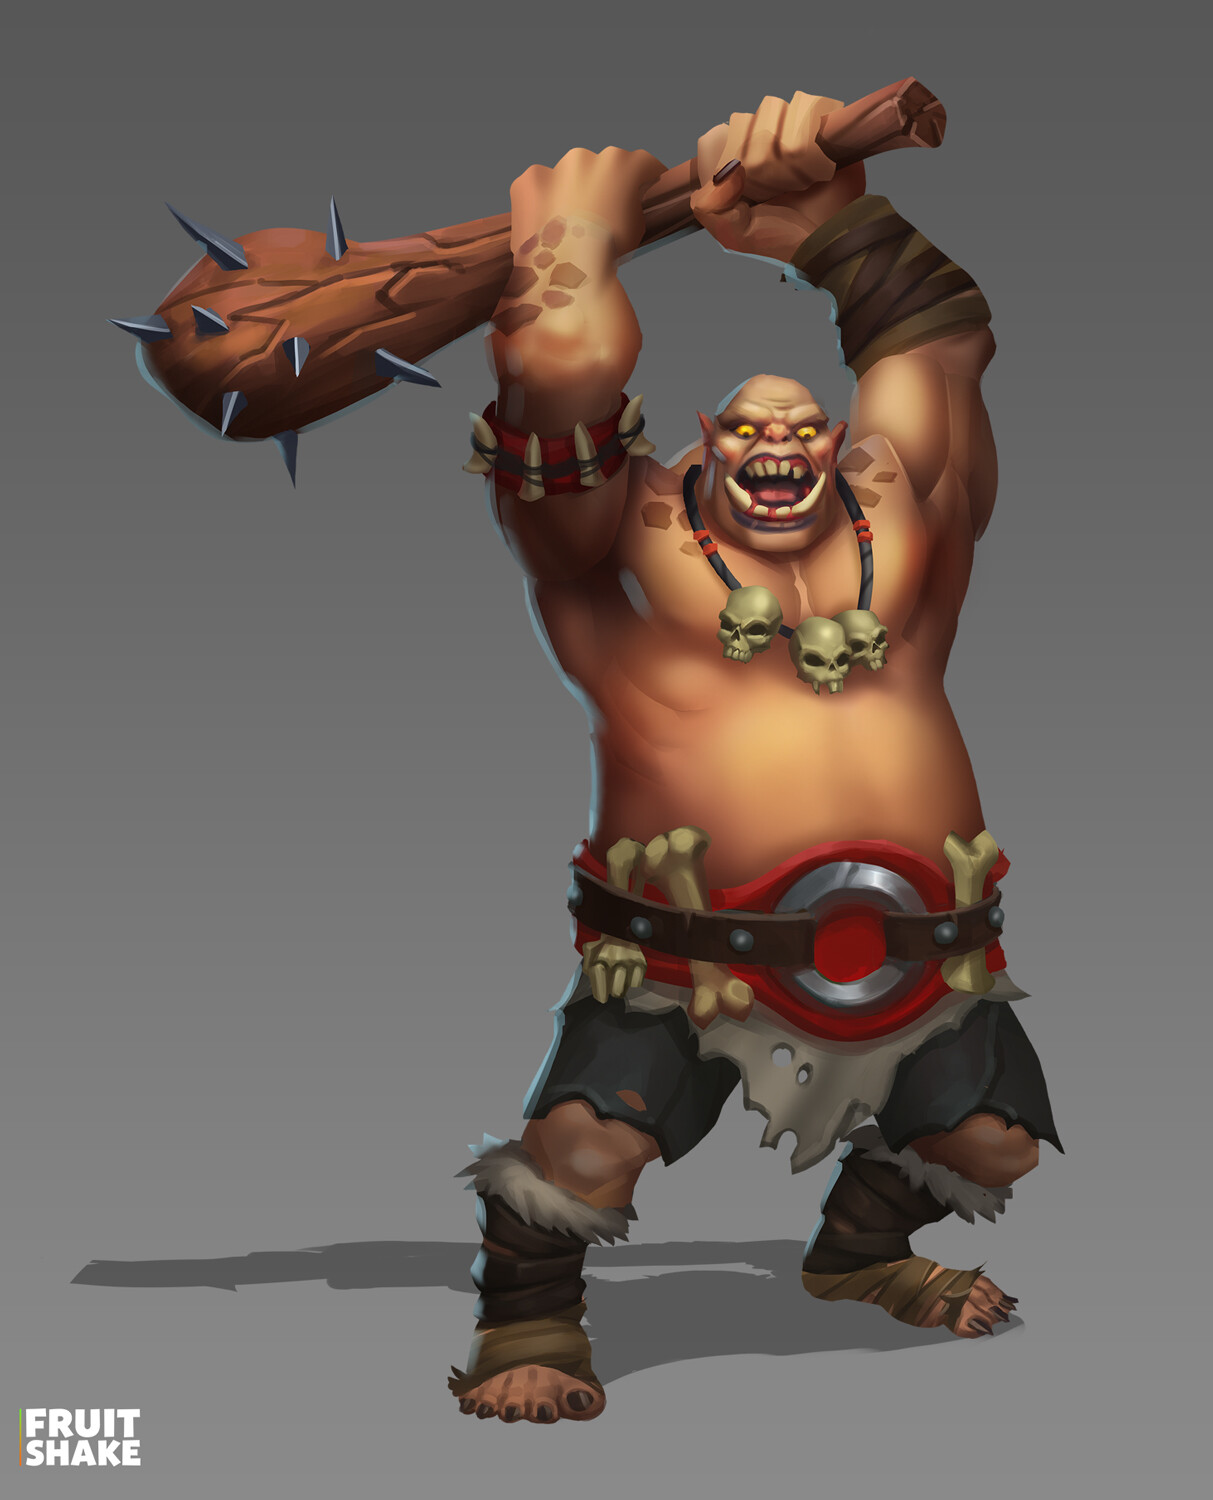 Alexey Stepanov - Ogre for mobile game